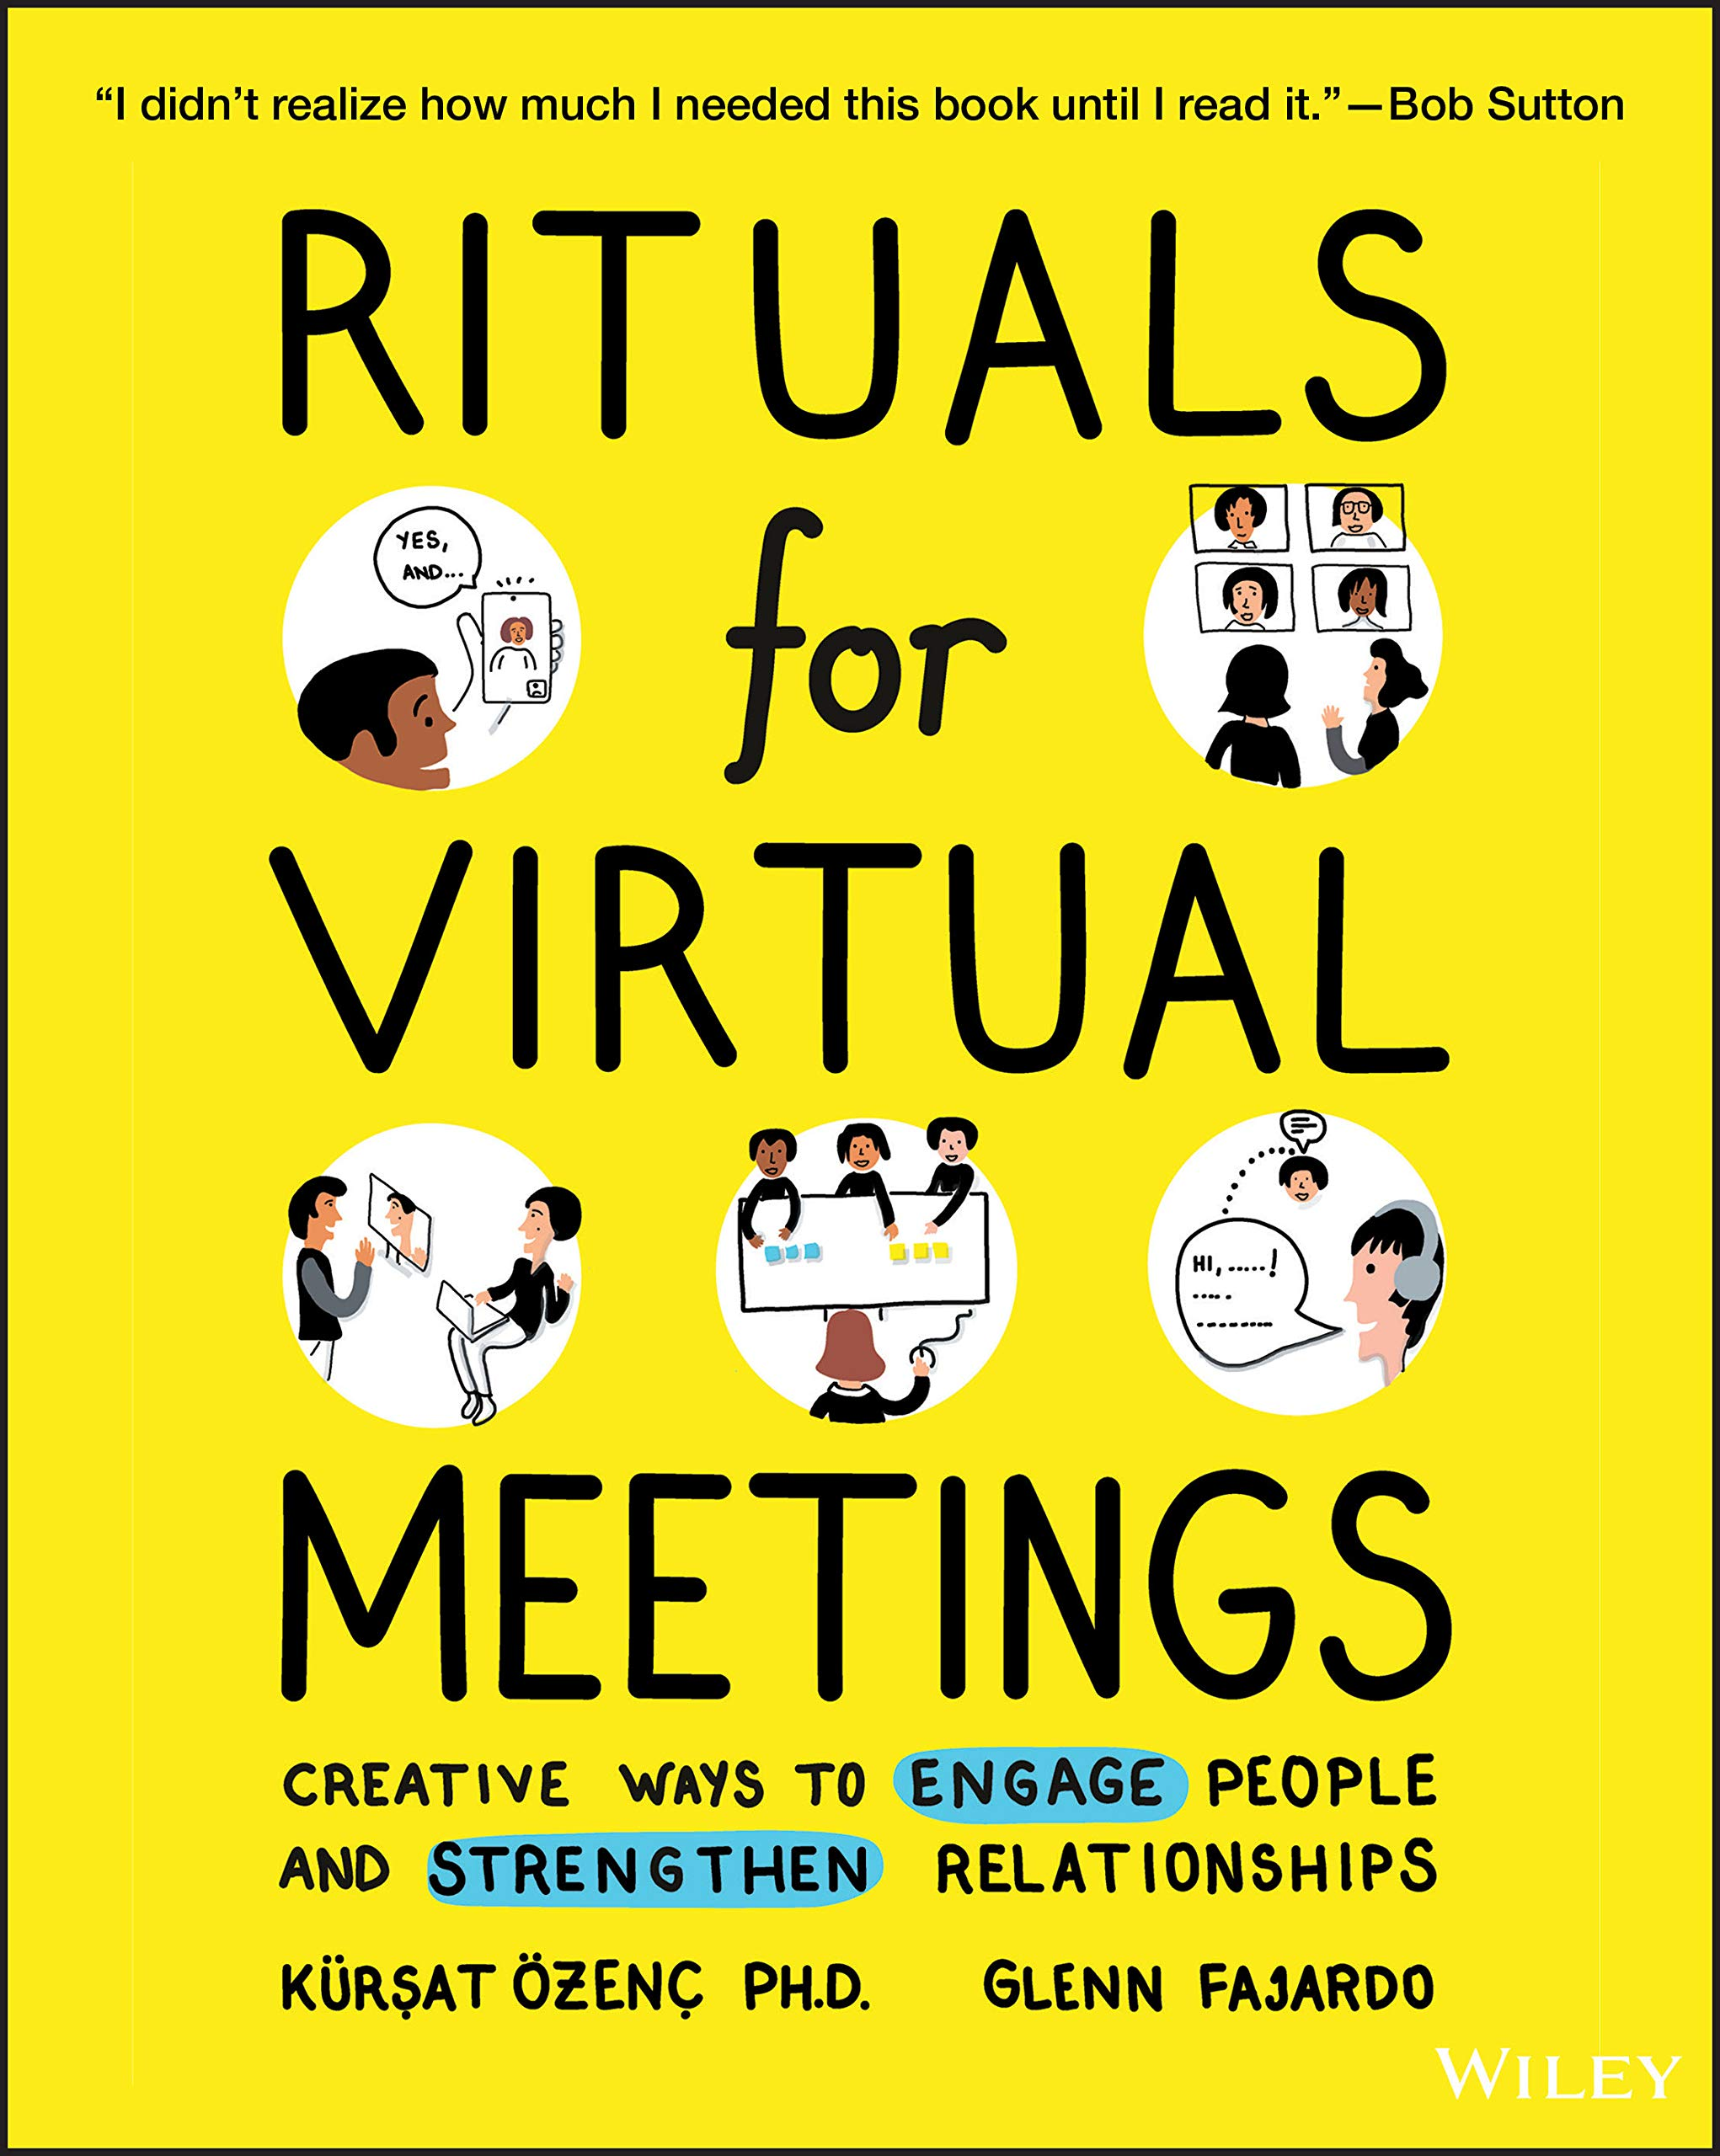 Rituals for Virtual Meetings: Creative Ways to Engage People and Strengthen Relationships